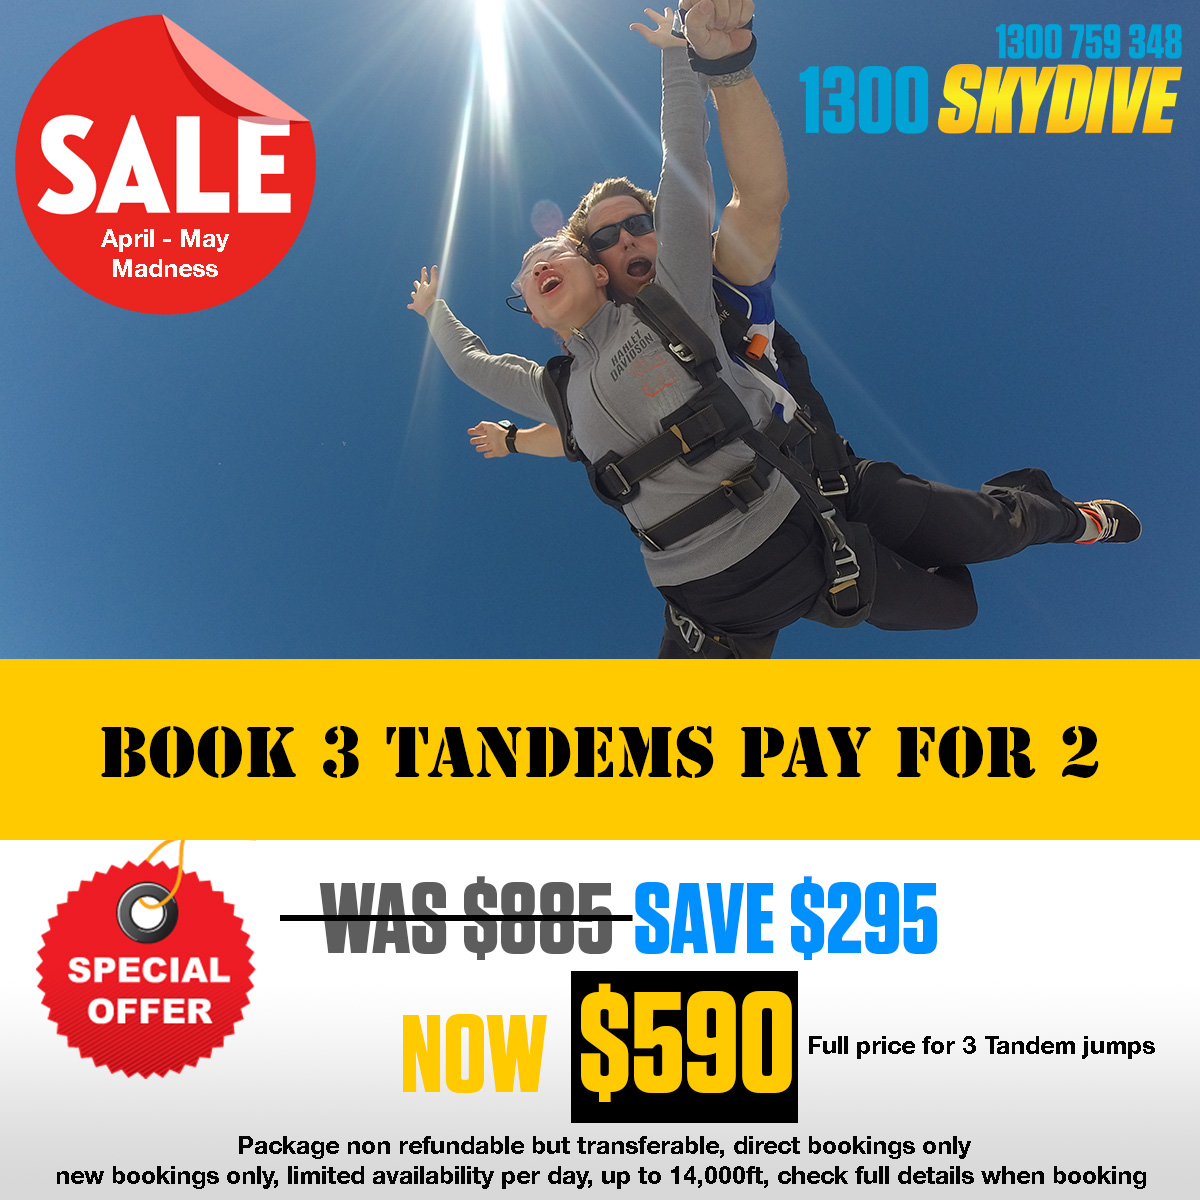 Tandem Skydive - Book 3 pay 2